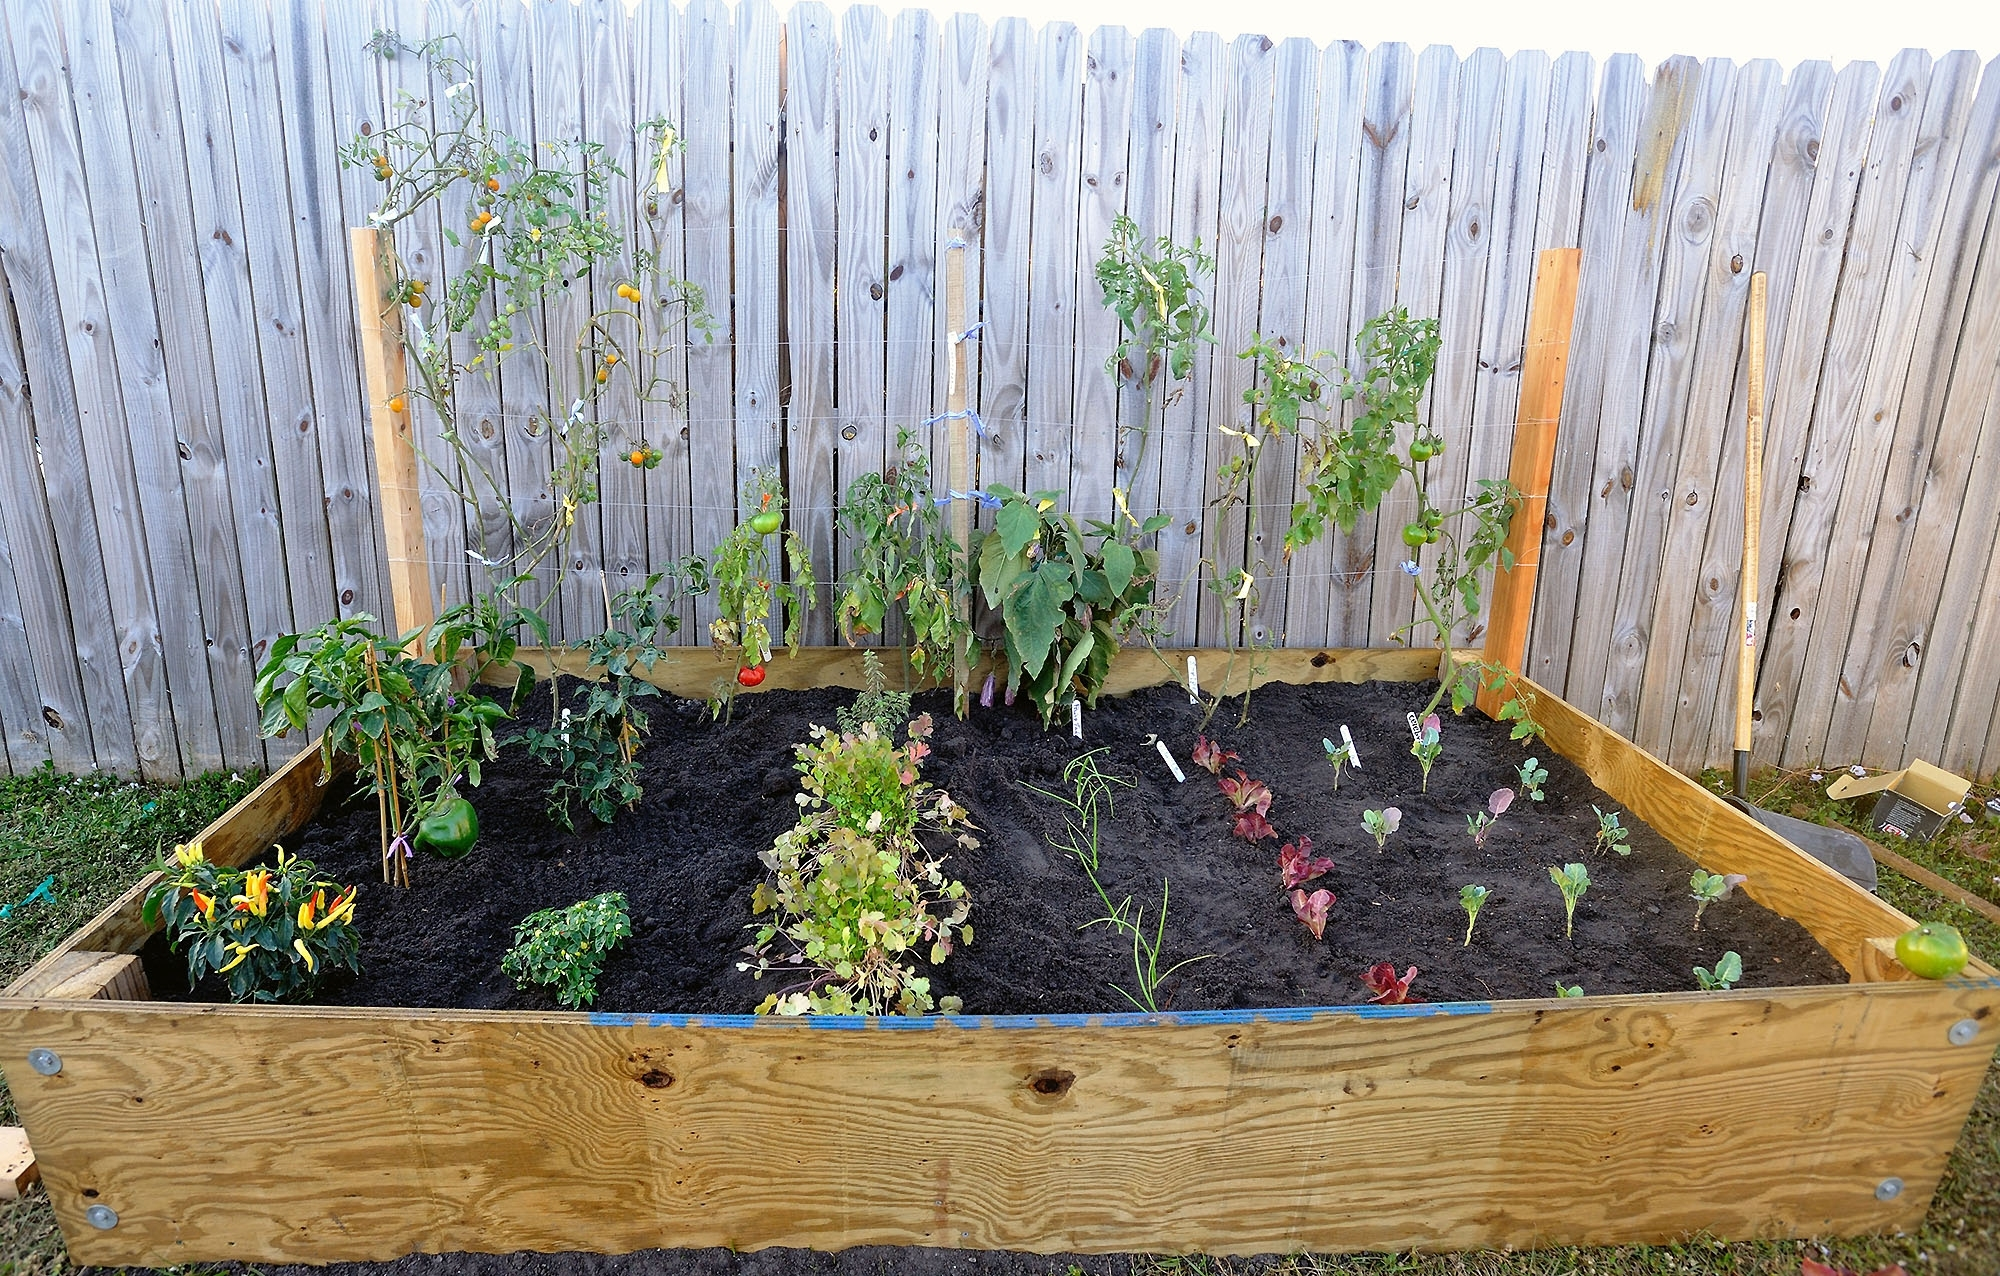 Involve Wooden Frames Vegetable Gardening In A Small Backyard   2048 in Florida Backyard Vegetable Garden Ideas